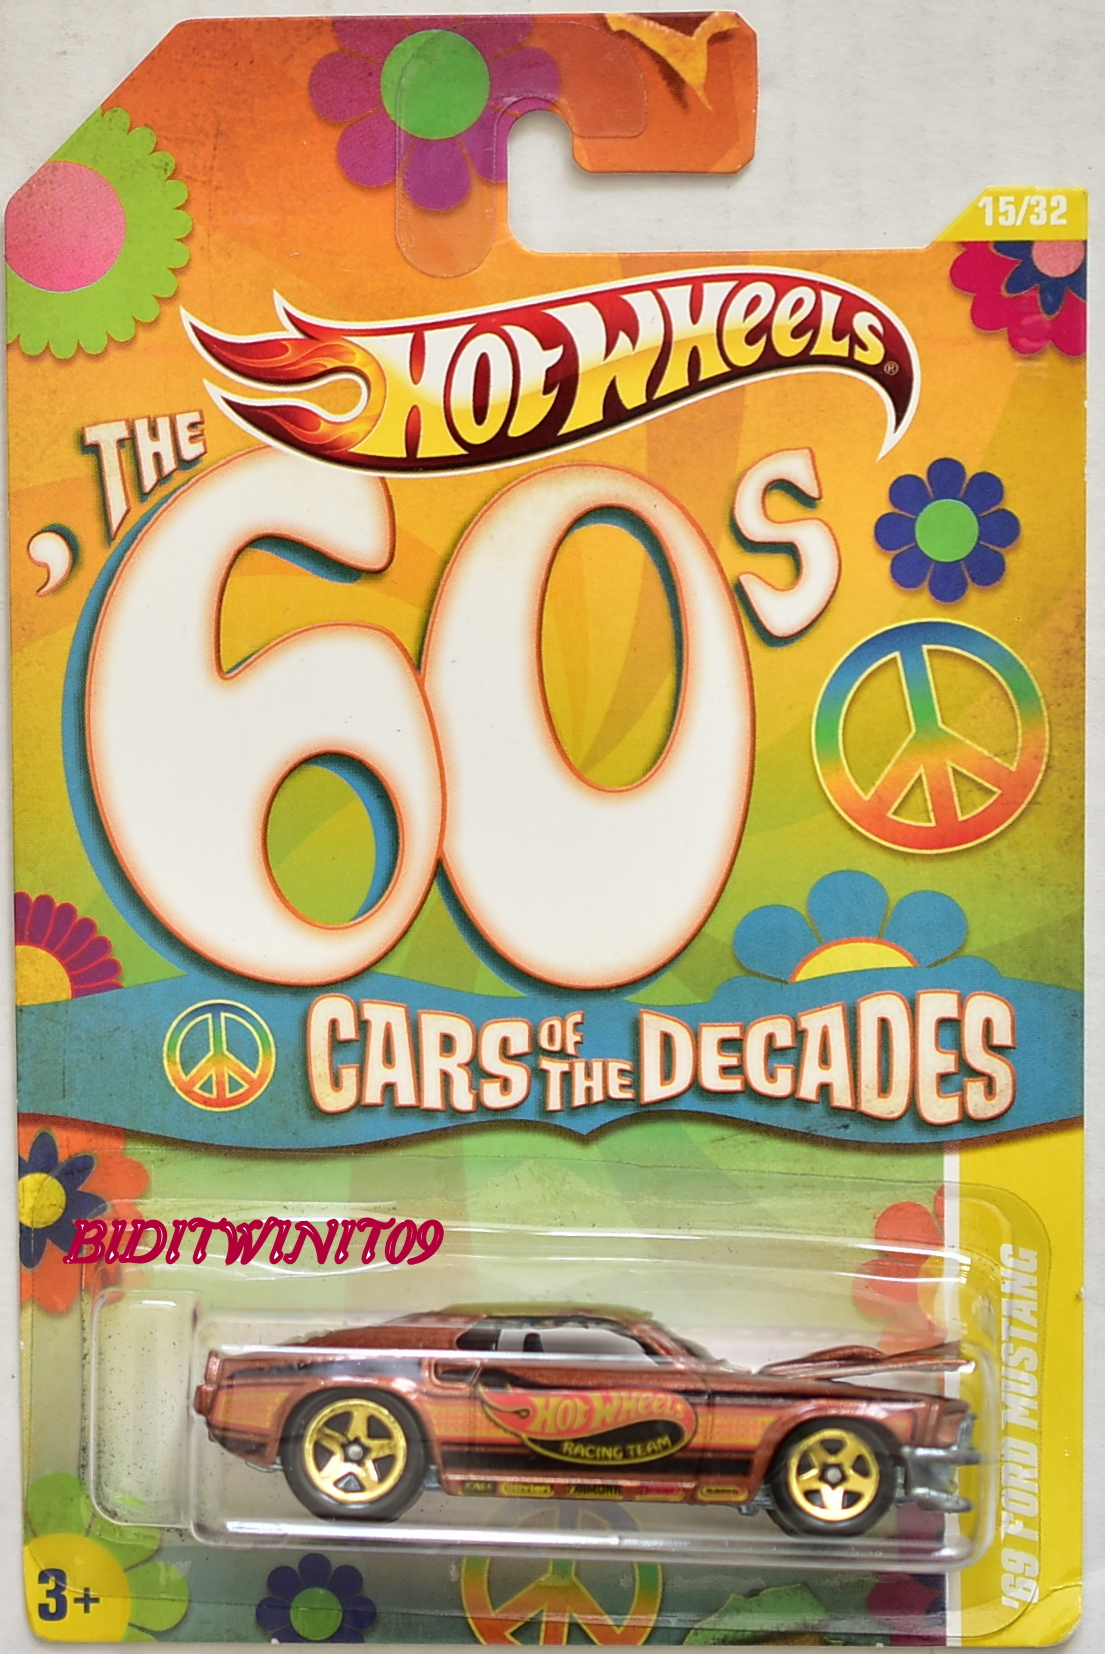 HOT WHEELS 2010 THE 60'S CARS OF THE DECADES '69 FORD MUSTANG